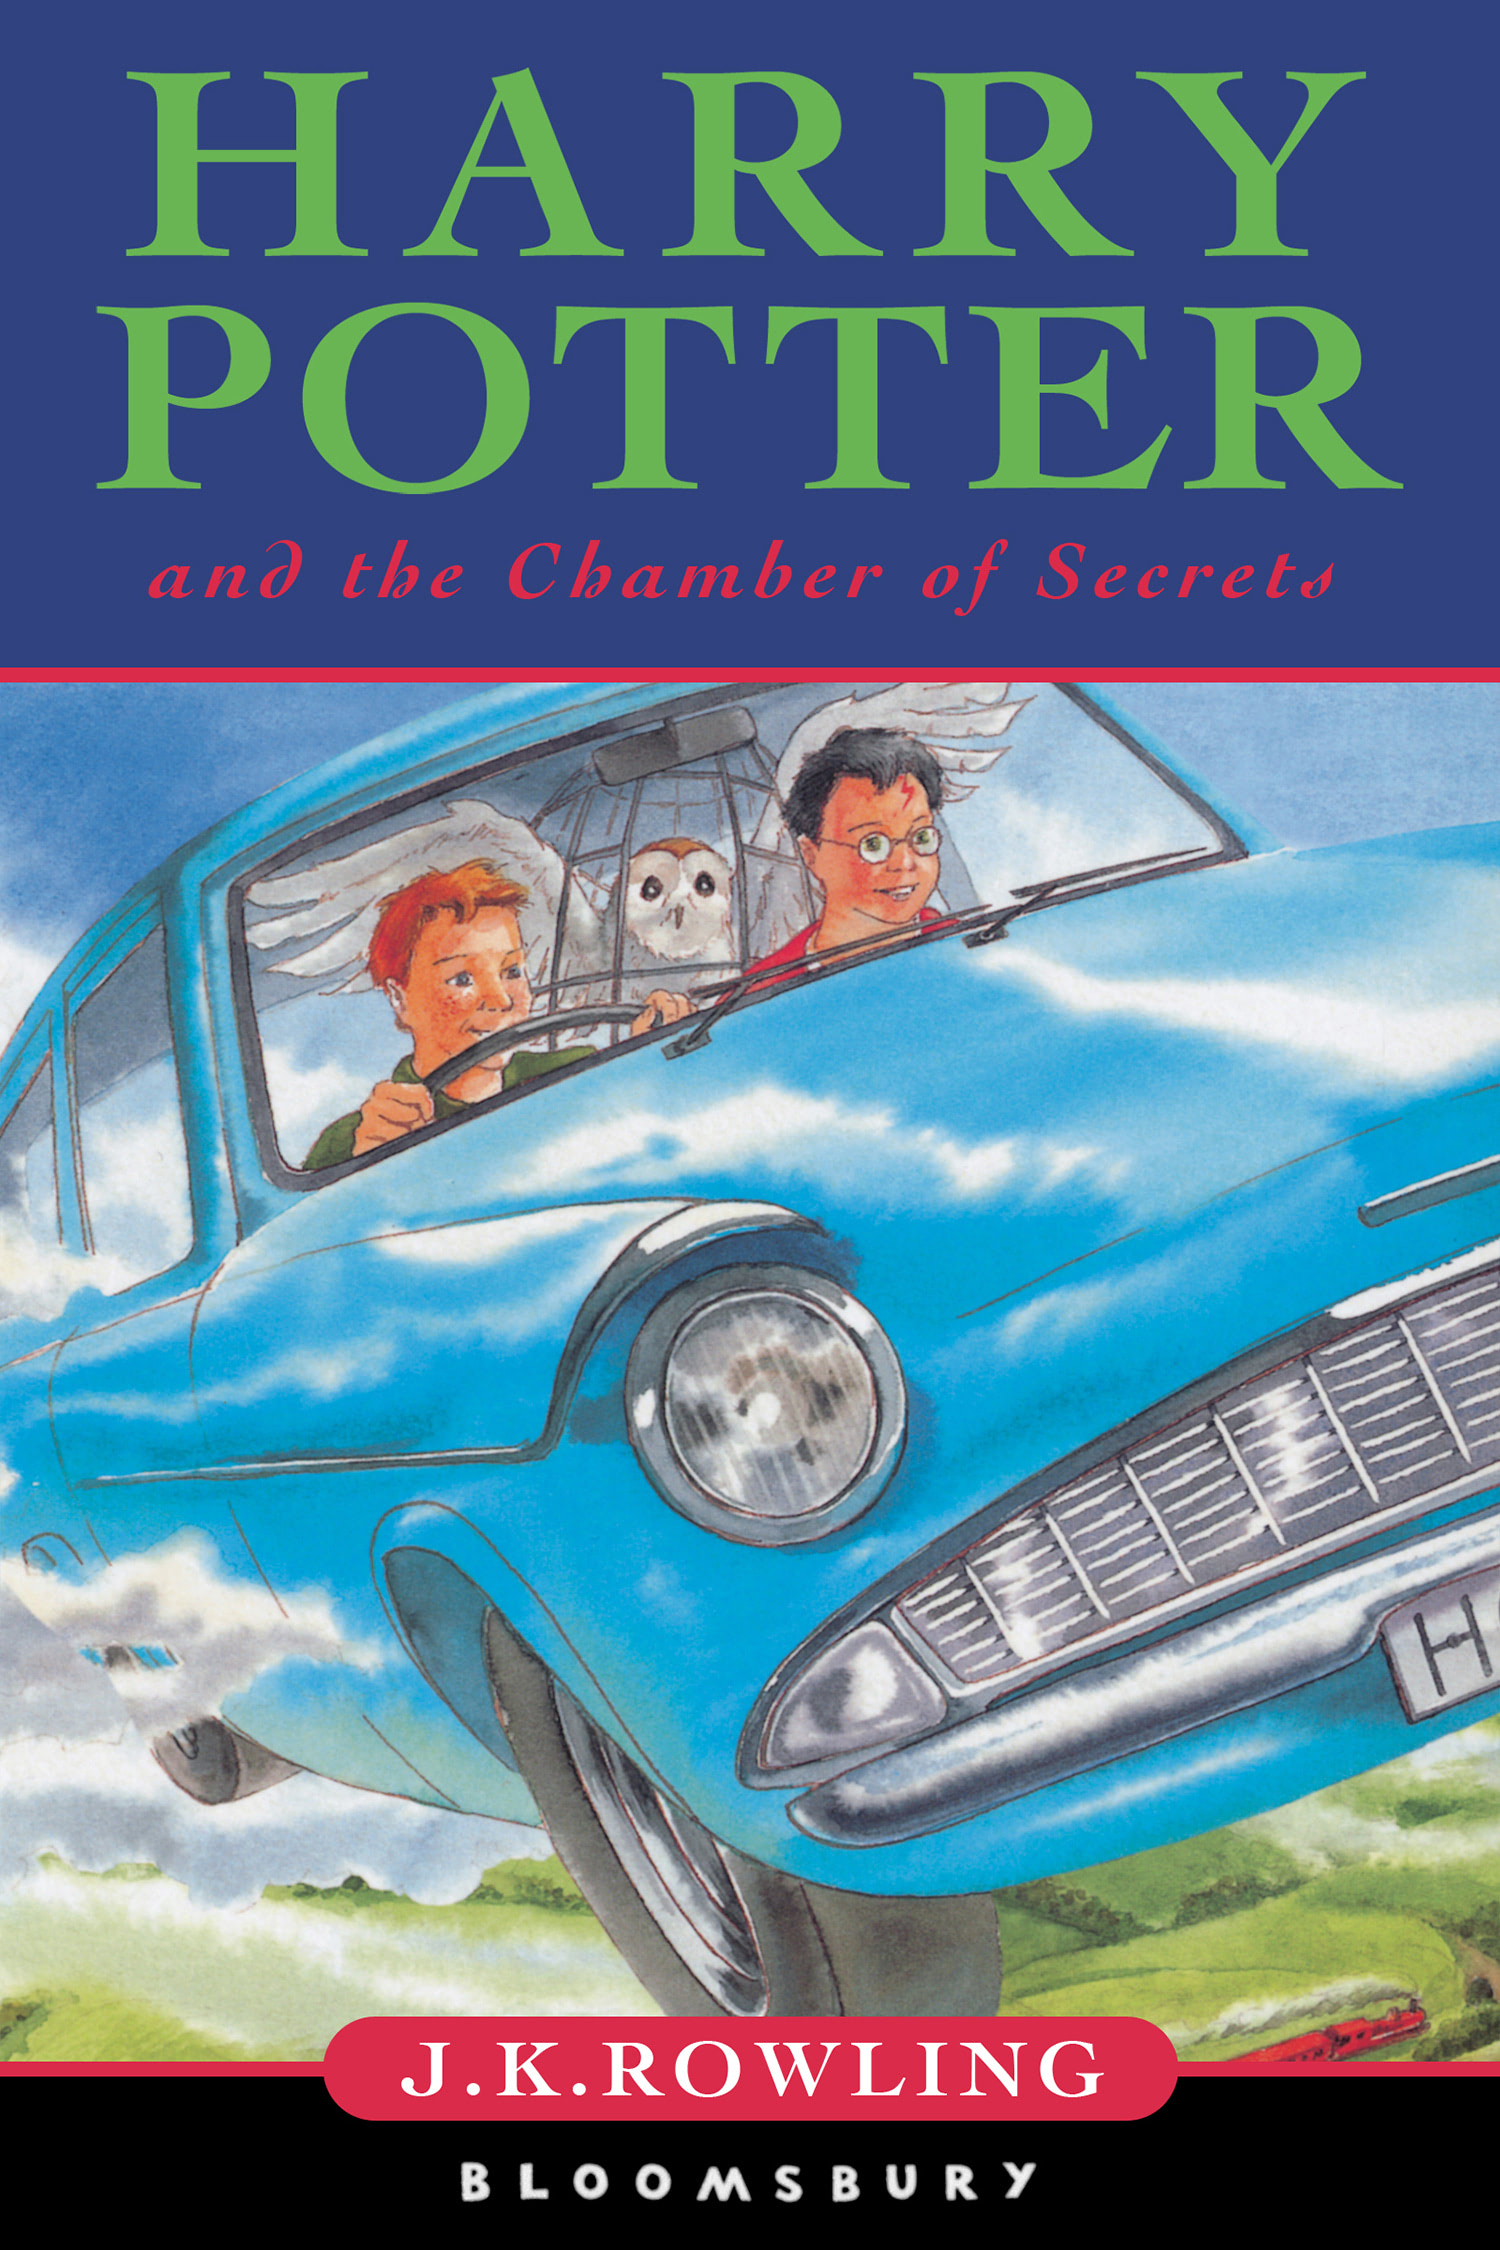 'Chamber of Secrets' UK children's edition